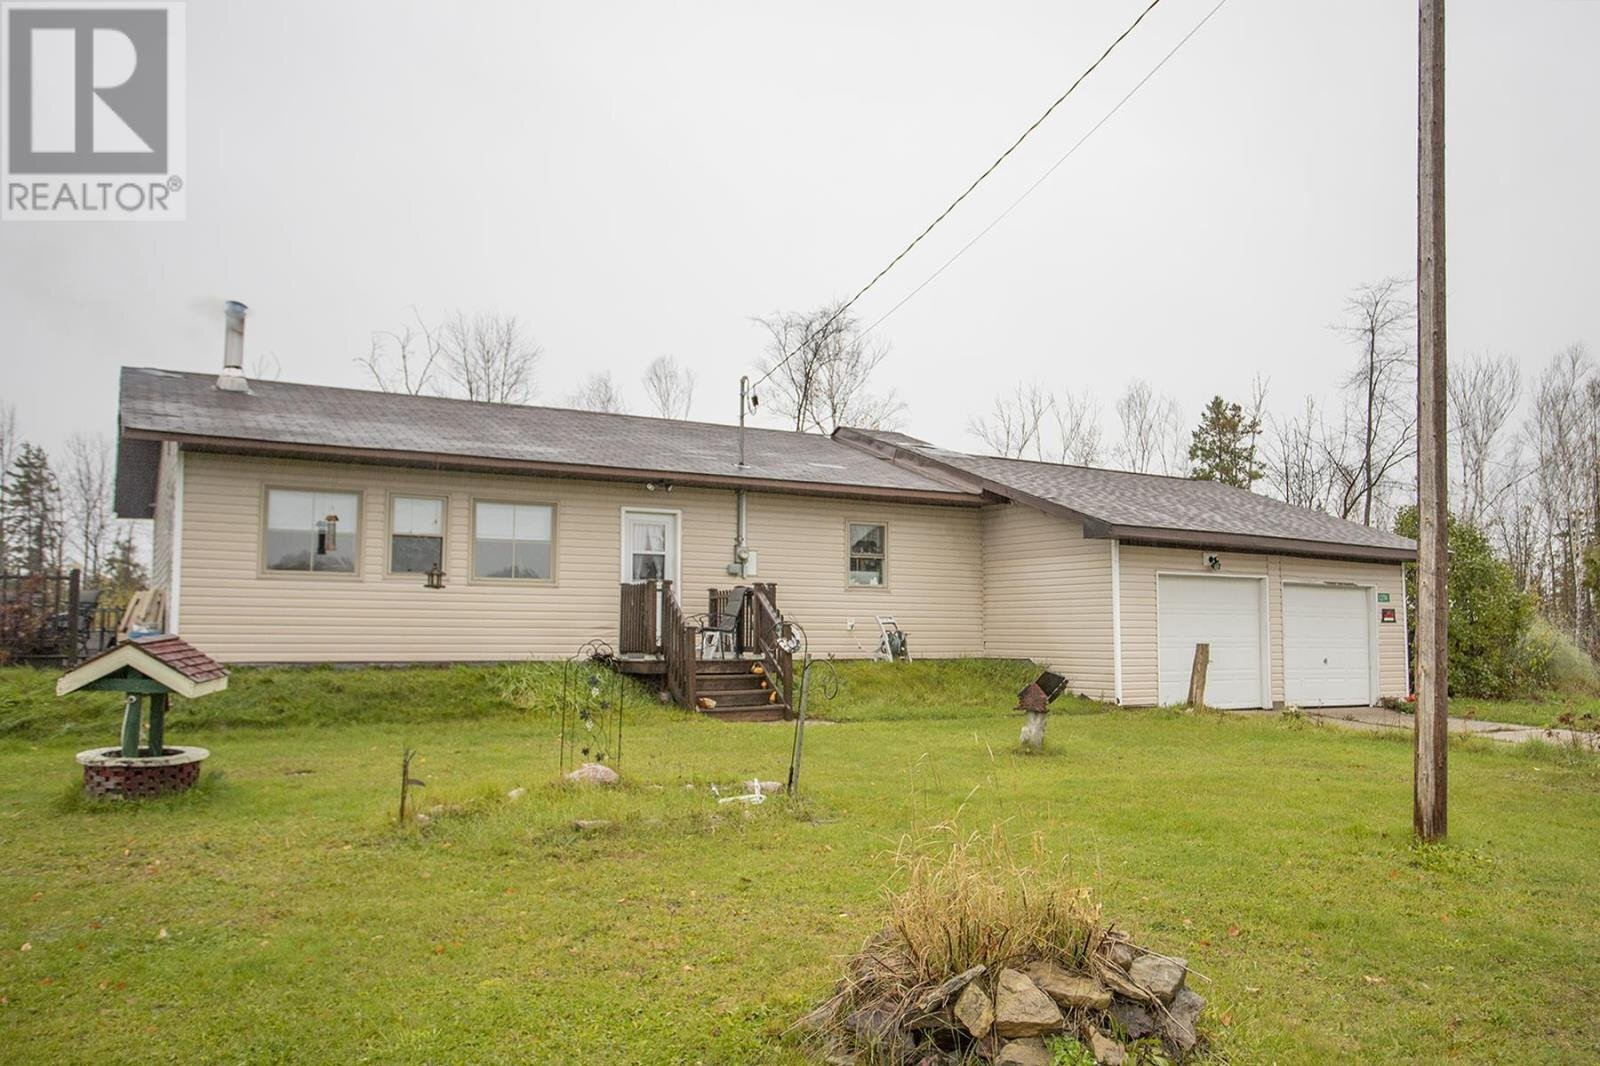 House for sale at 1374 C Line Rd Richards Landing Ontario - MLS: SM130153